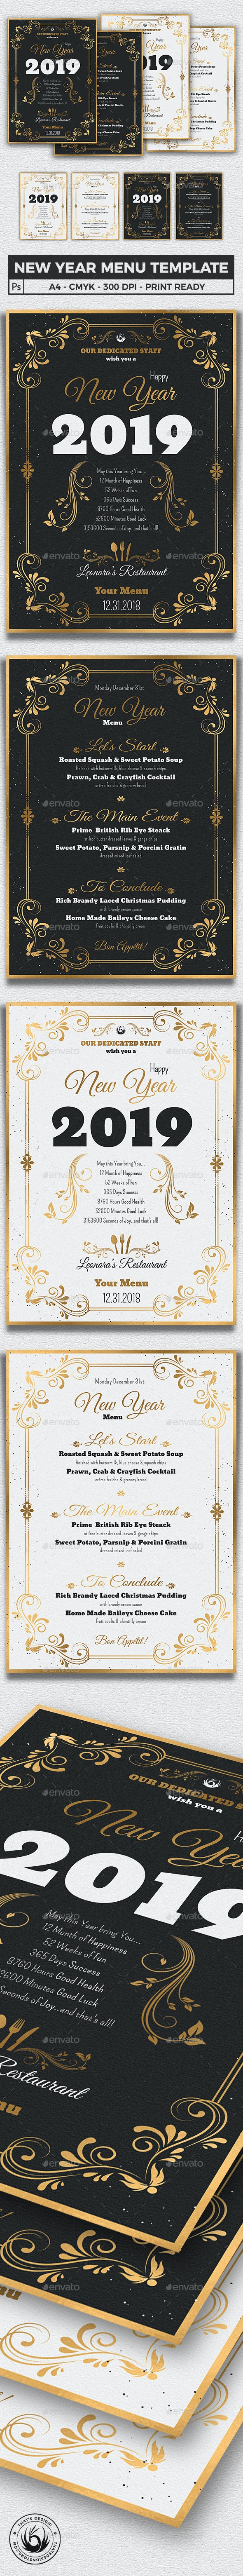 New Year Menu Template V1 - Holidays Events